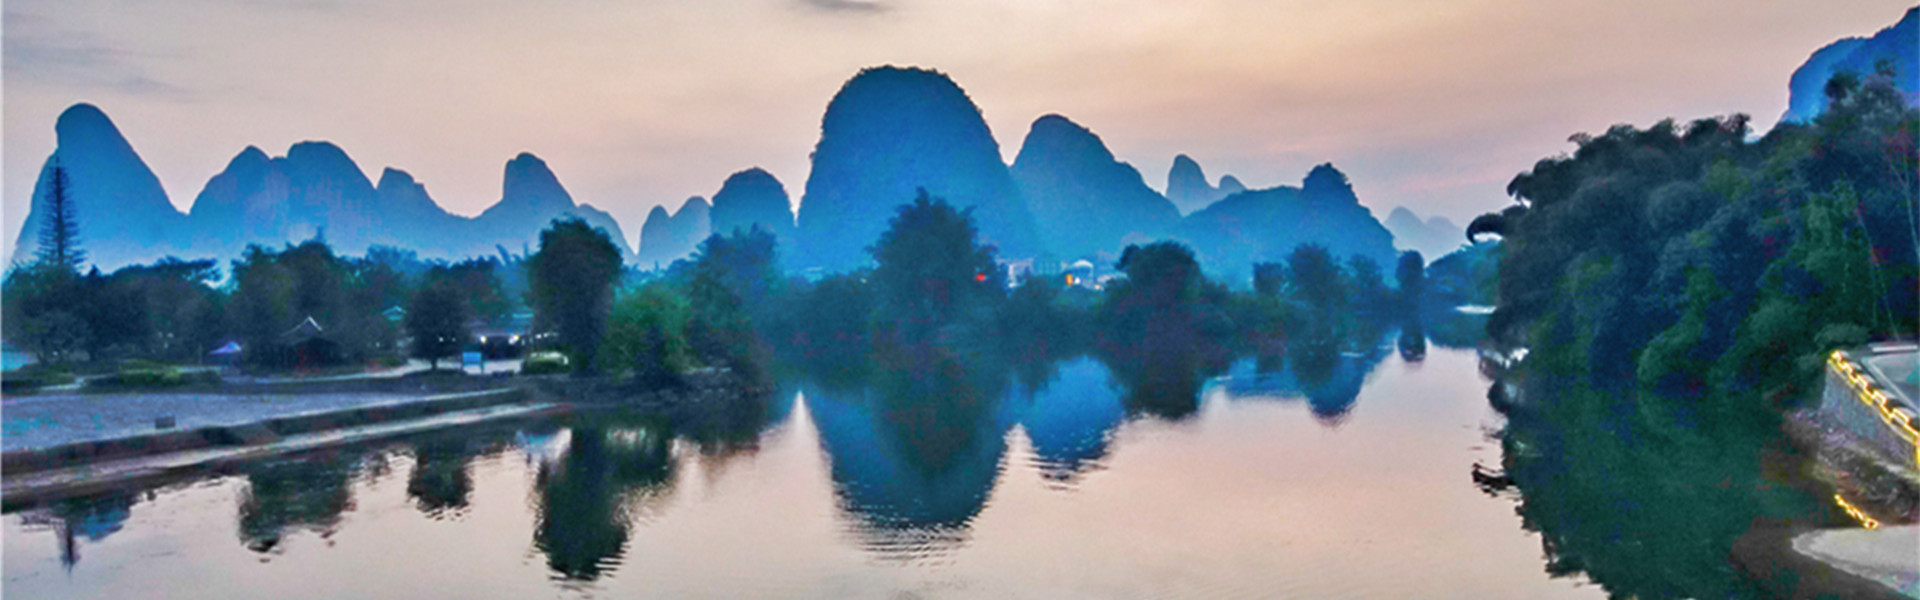 6 Days Guilin to Zhangjiajie Tour by flight